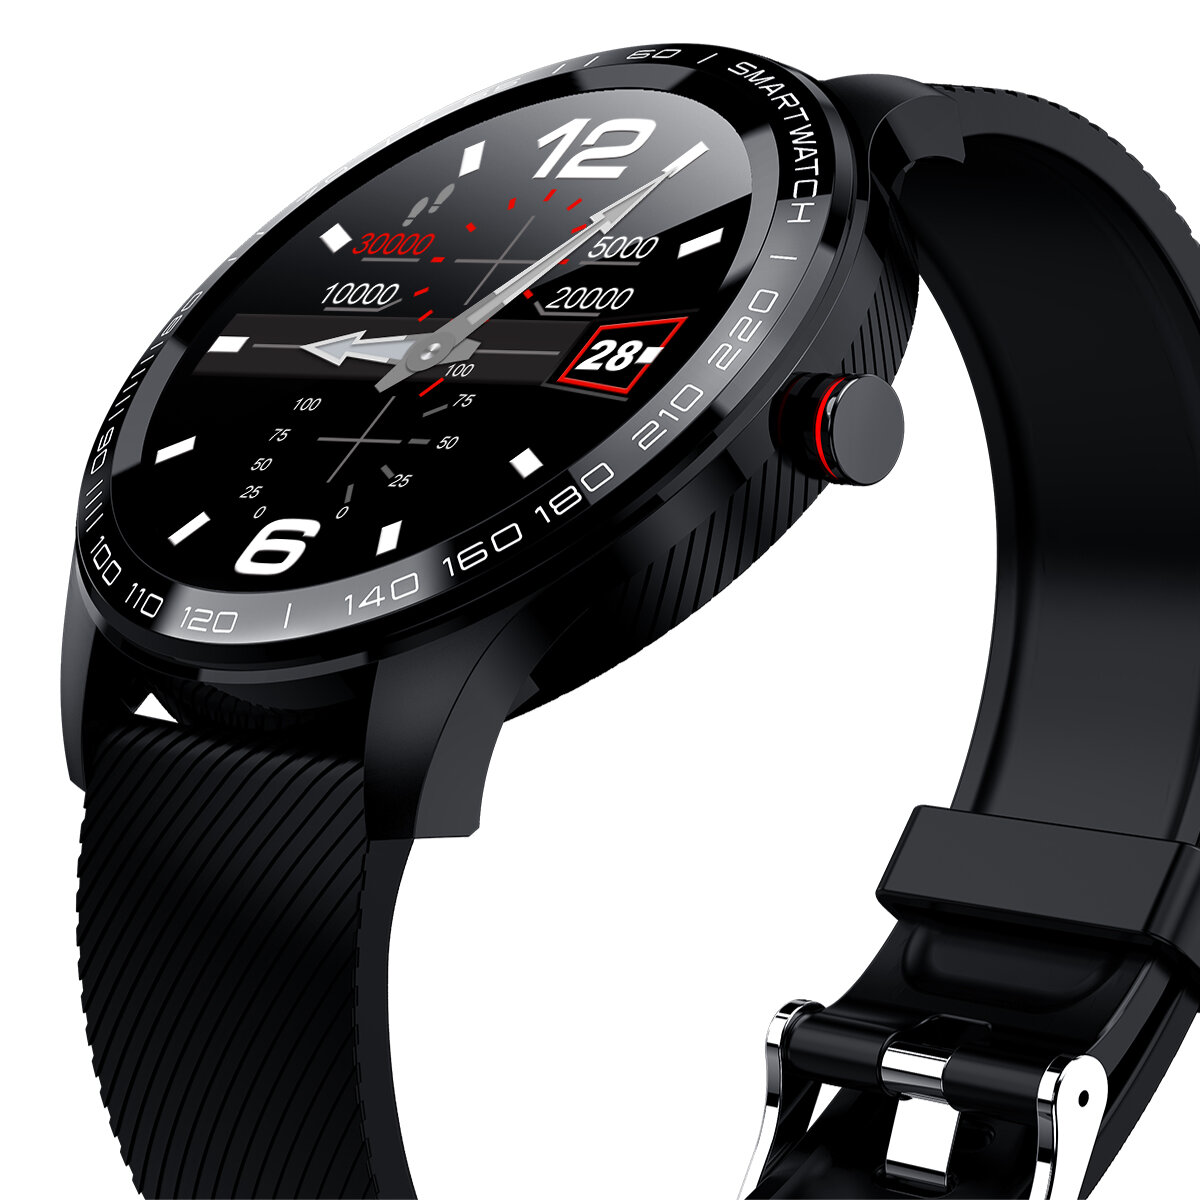 Microwear L9 Full Round Touch Screen Stainless Steel Bezel ECG Heart Rate O2 IP68 Facebook Display Business Smart Watch